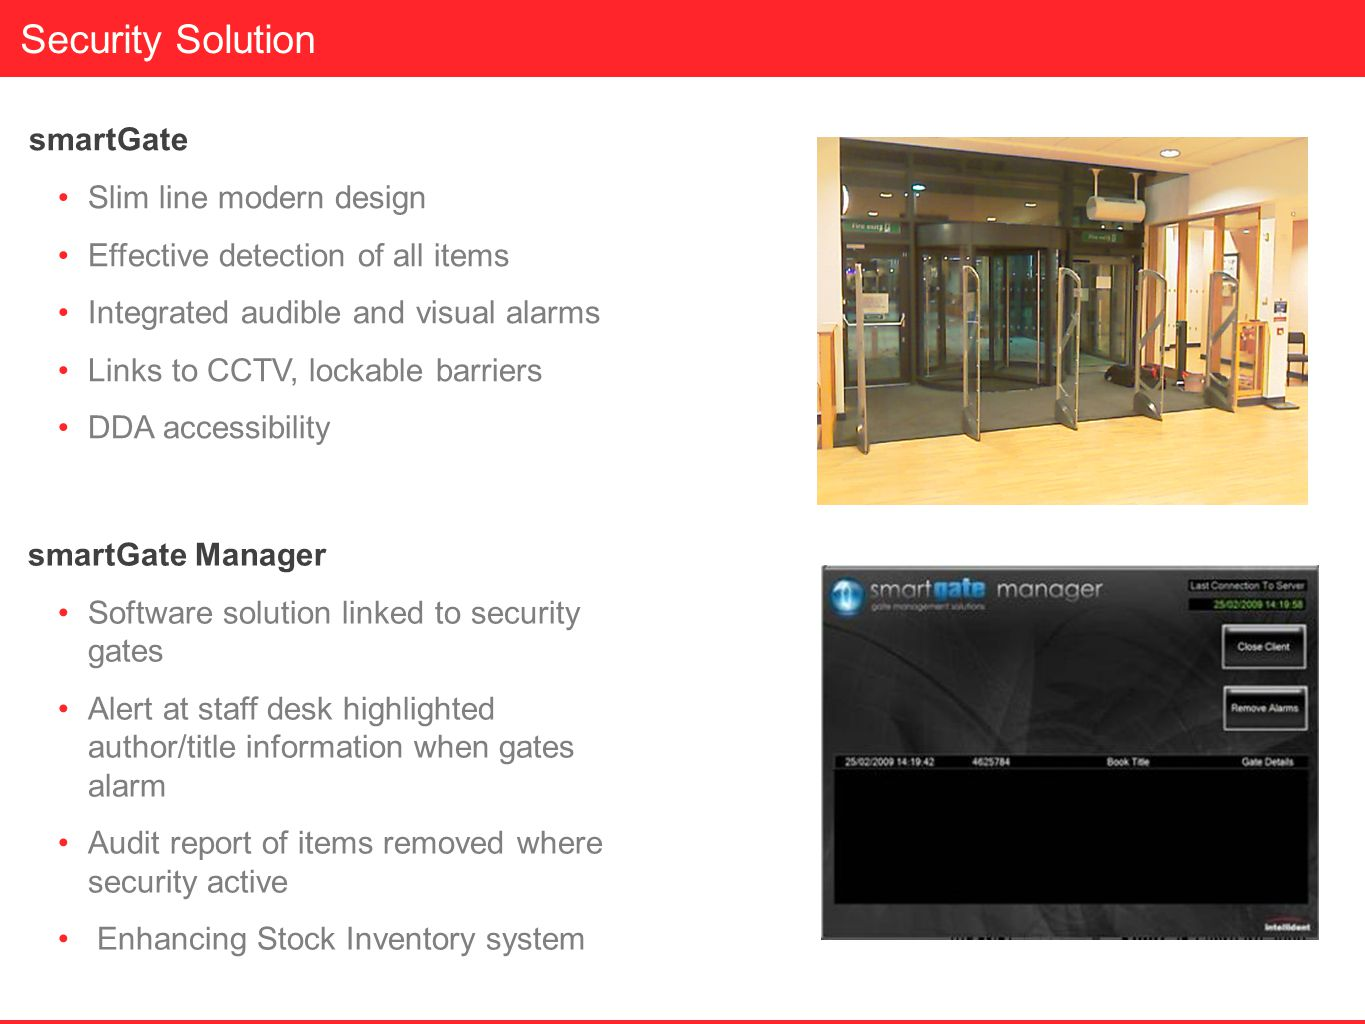 Security Solution smartGate Slim line modern design Effective detection of all items Integrated audible and visual alarms Links to CCTV, lockable barr